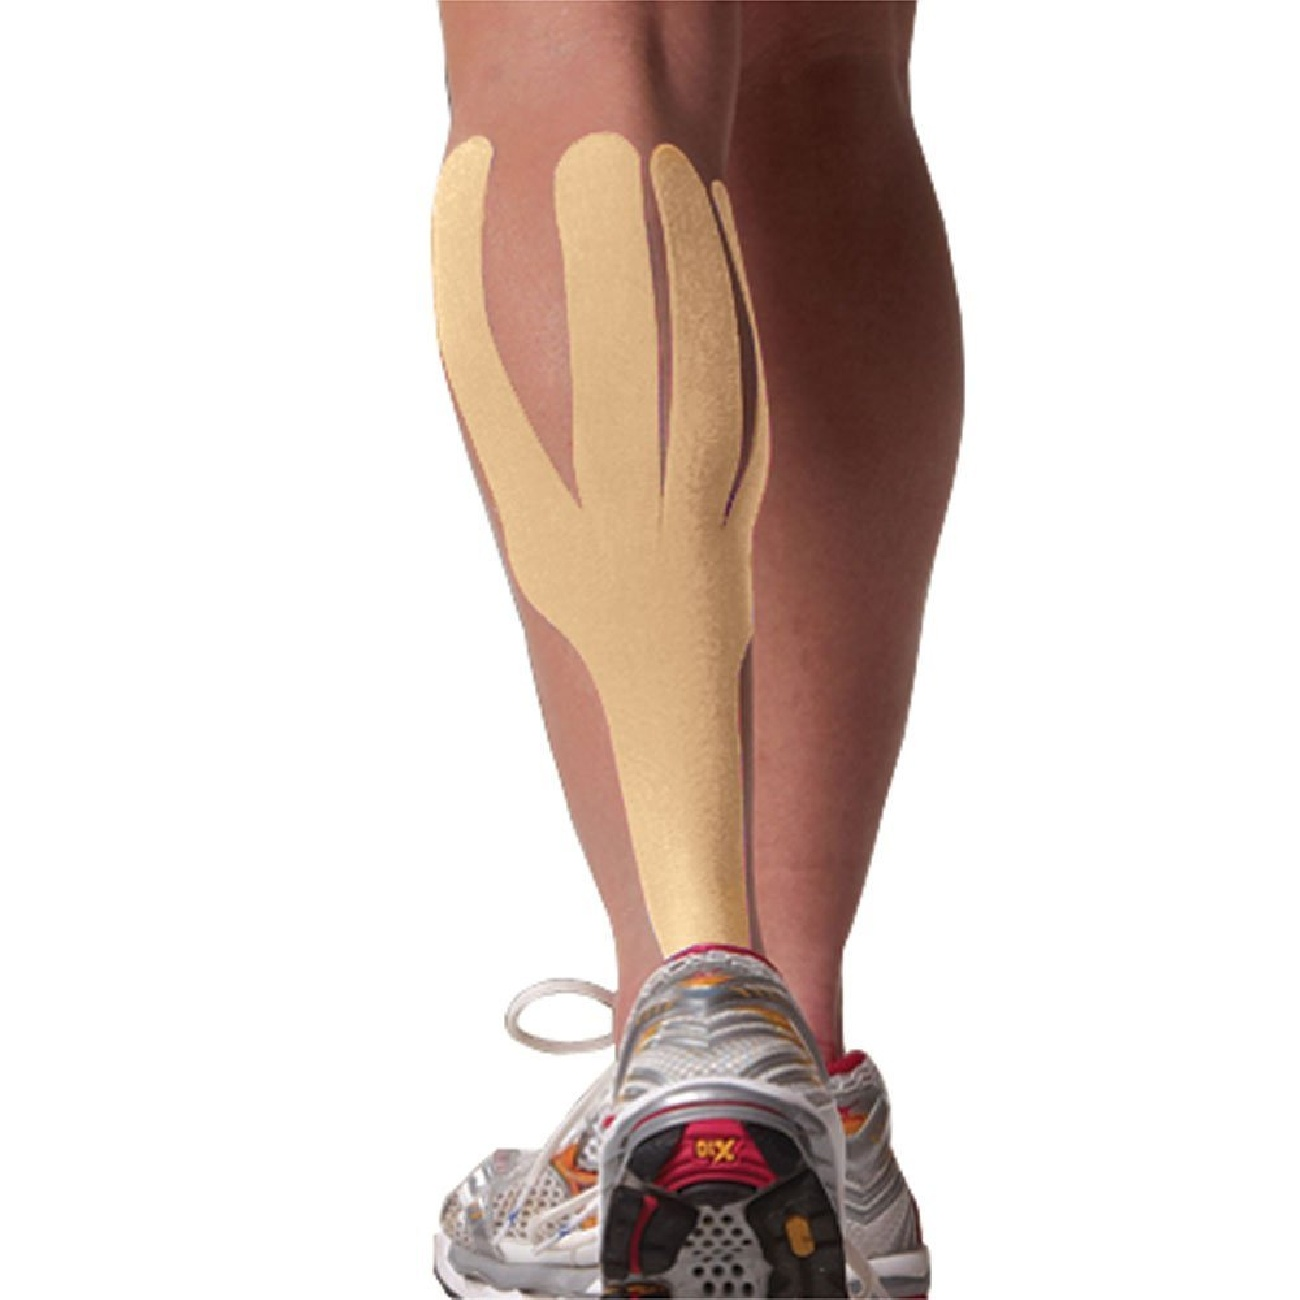 SpiderTech Calf and Arch Tape - Beige